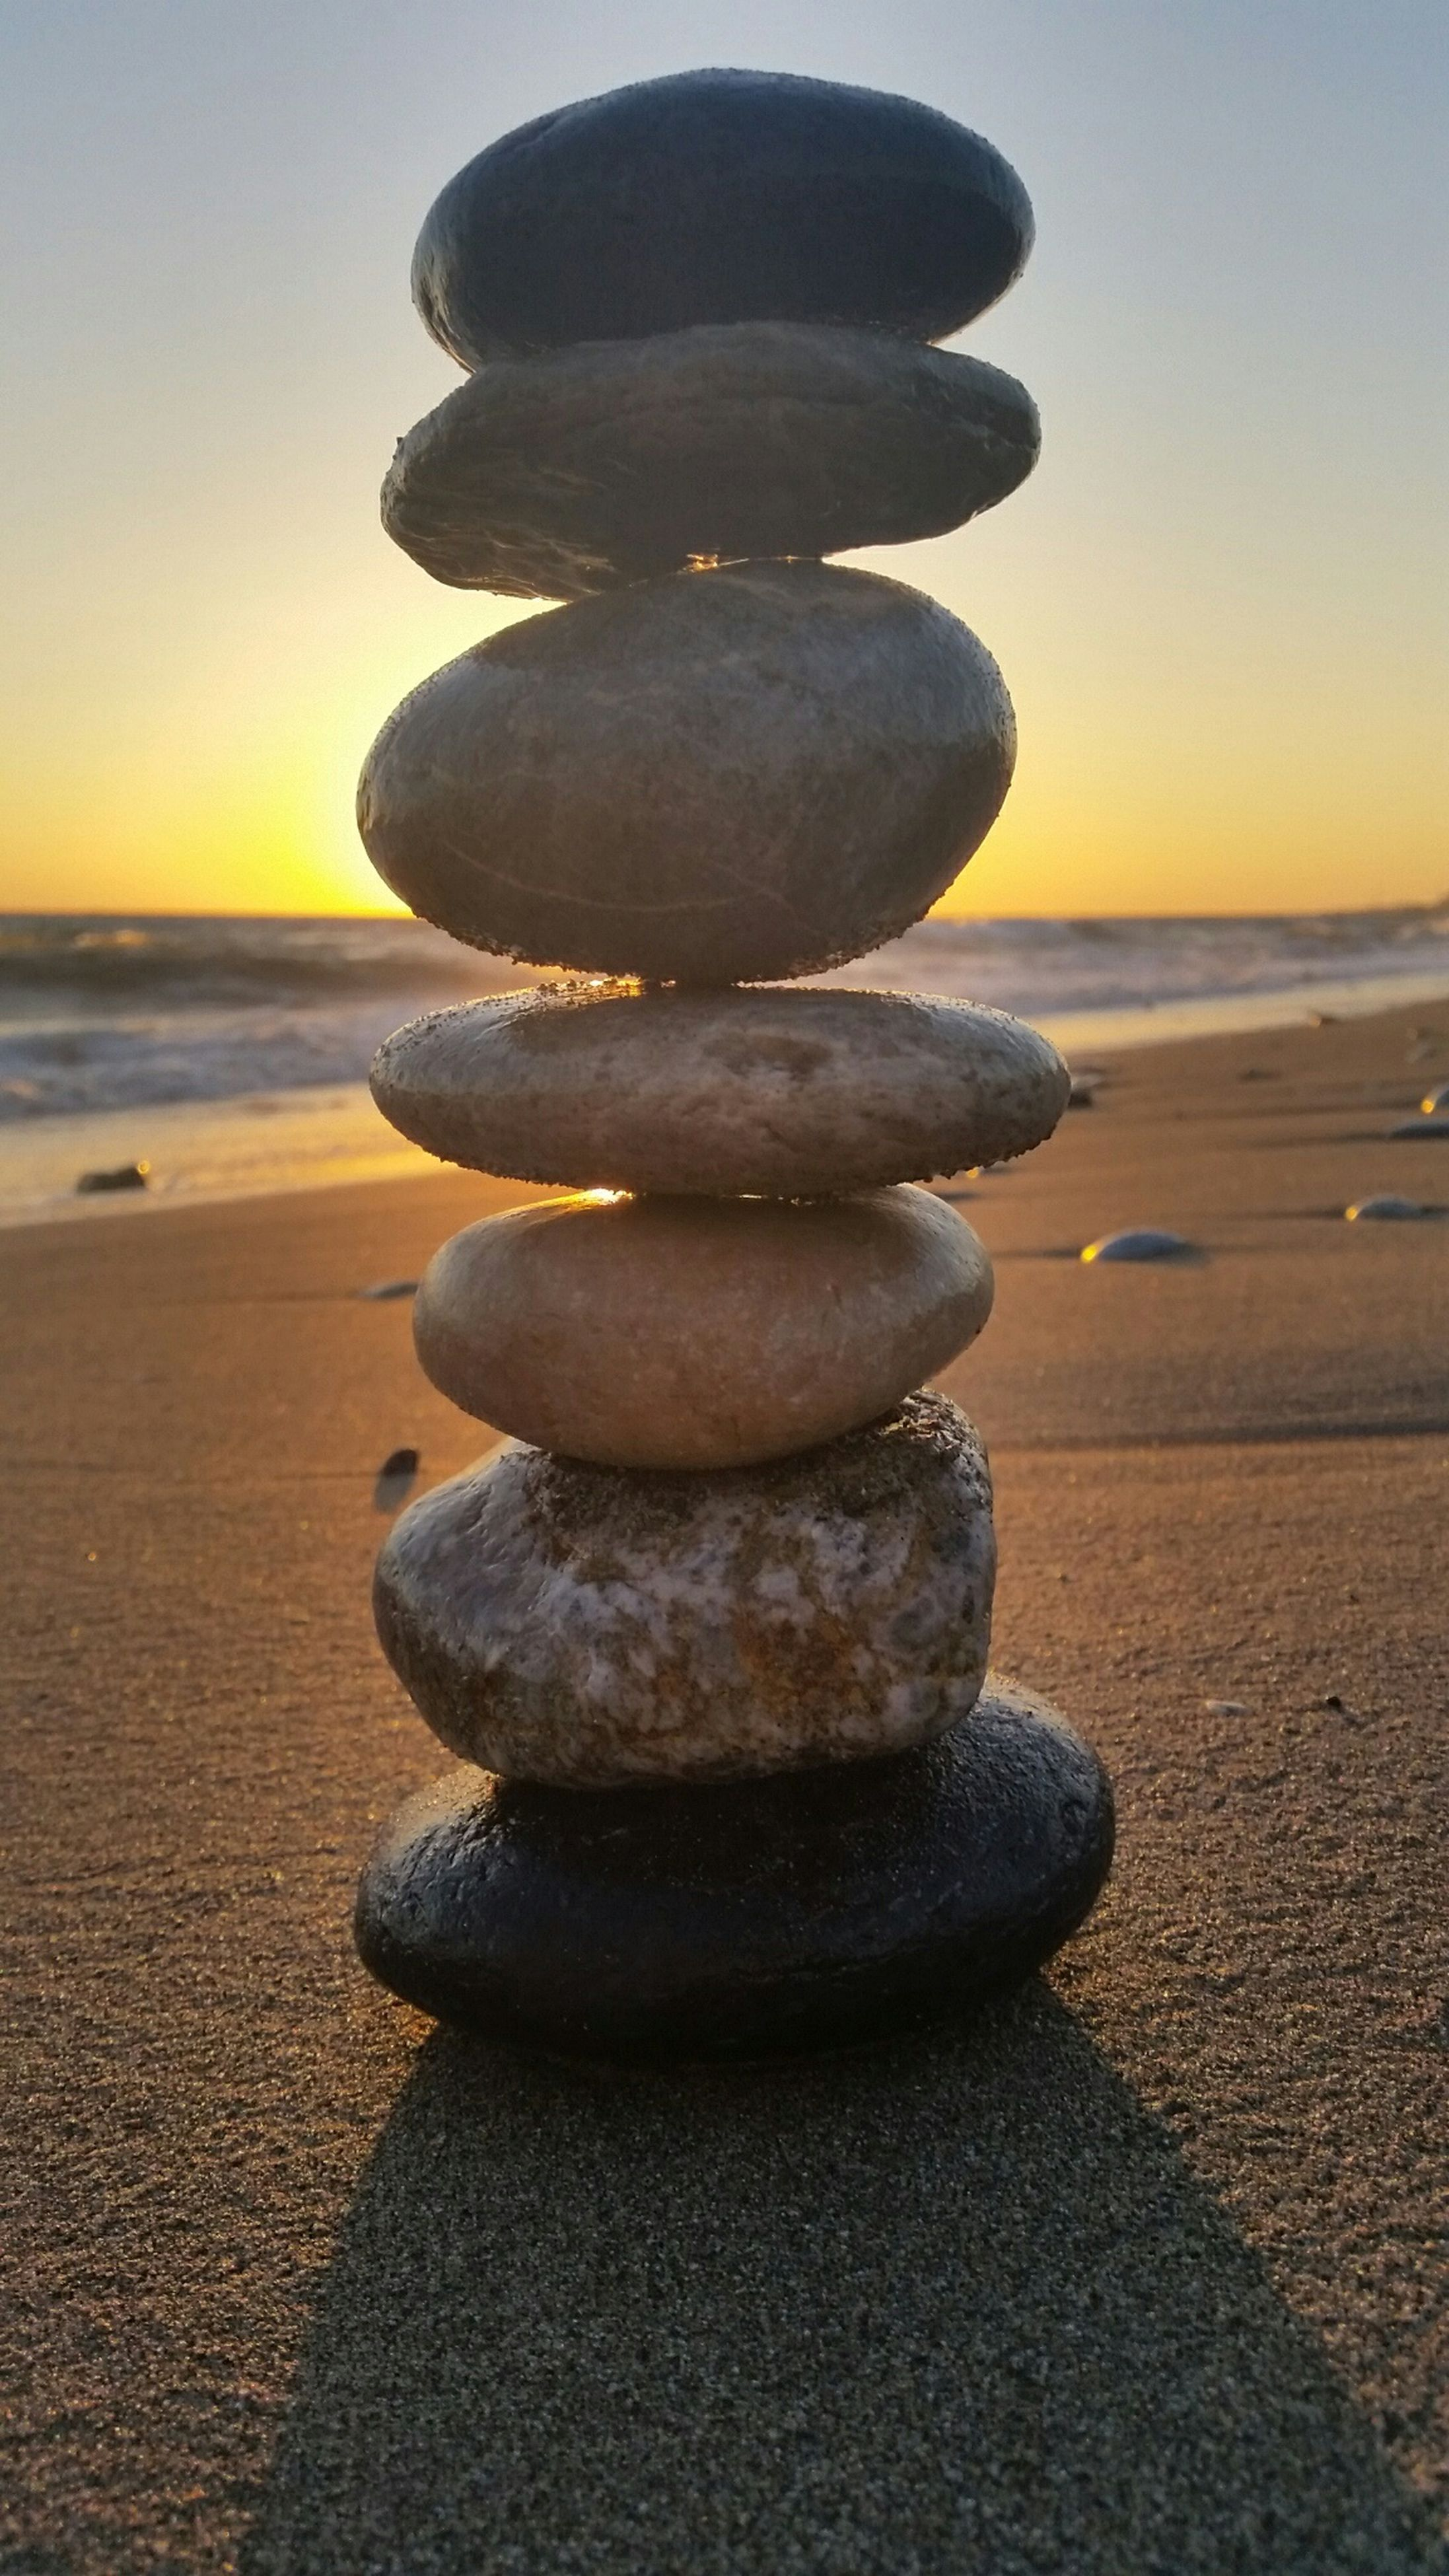 stack, balance, beach, sea, large group of objects, stone - object, pebble, tranquility, shore, horizon over water, sky, in a row, arrangement, focus on foreground, sunlight, sunset, rock - object, sand, clear sky, nature